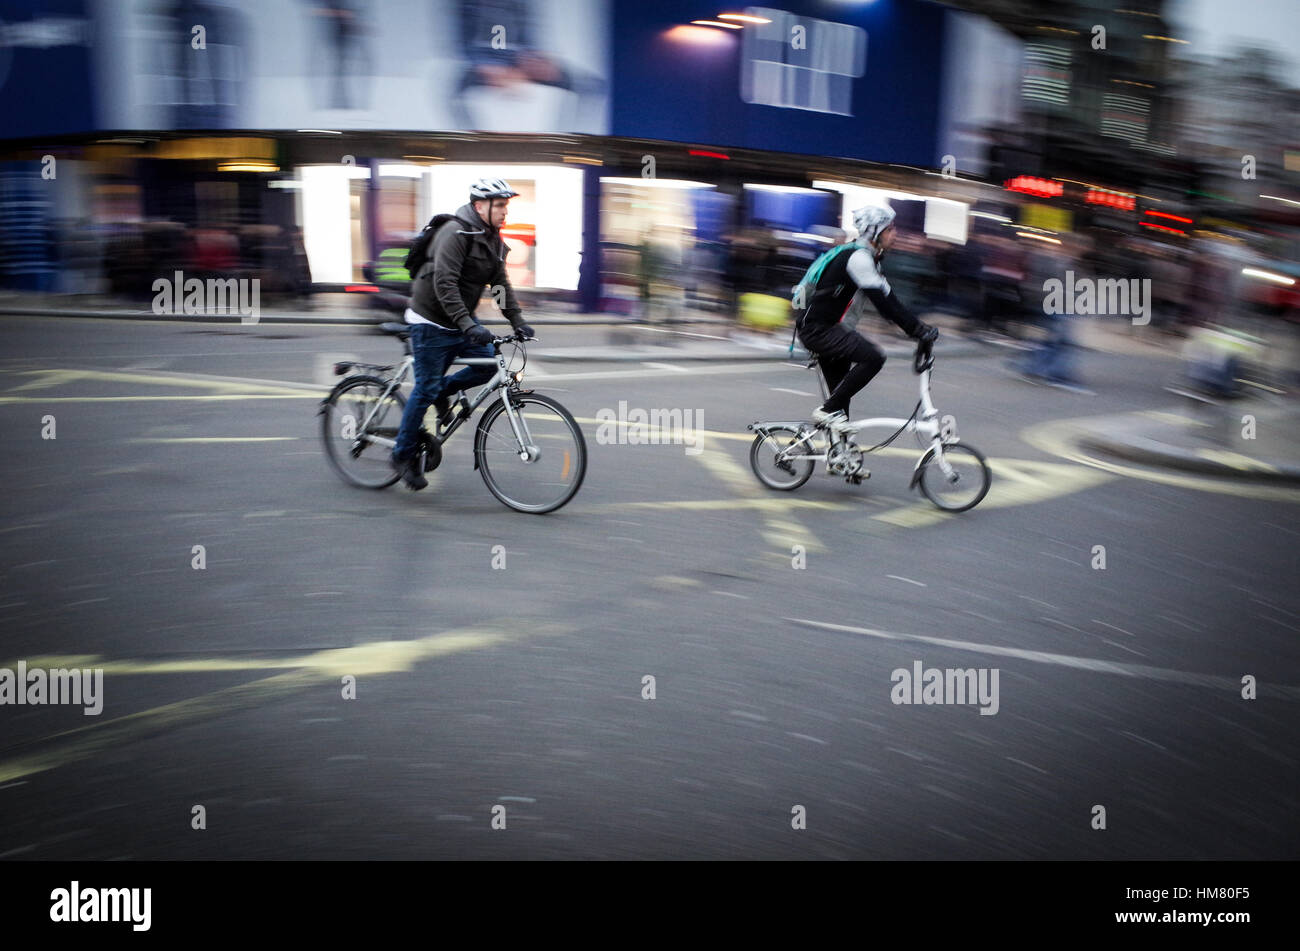 Two cyclists commute across the Piccadilly Circus in central London - Motion Blur - Stock Image